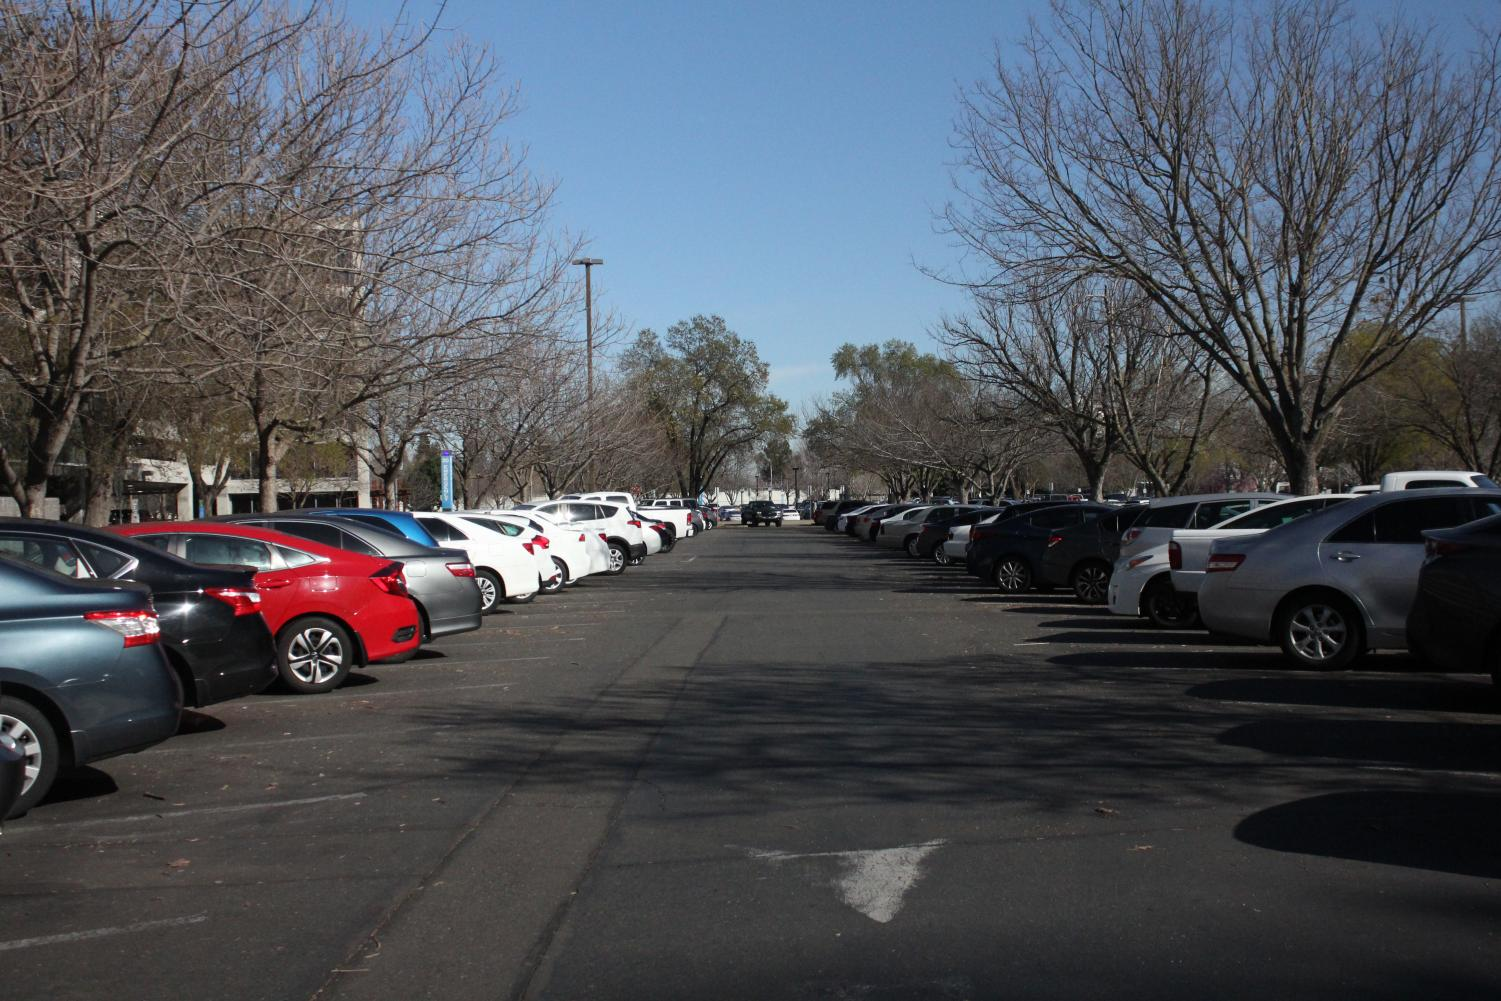 Student parking permits will be increasing to $178 a semester next school year. The price increase is part of an annual 2% price increase to fund UTAPS.